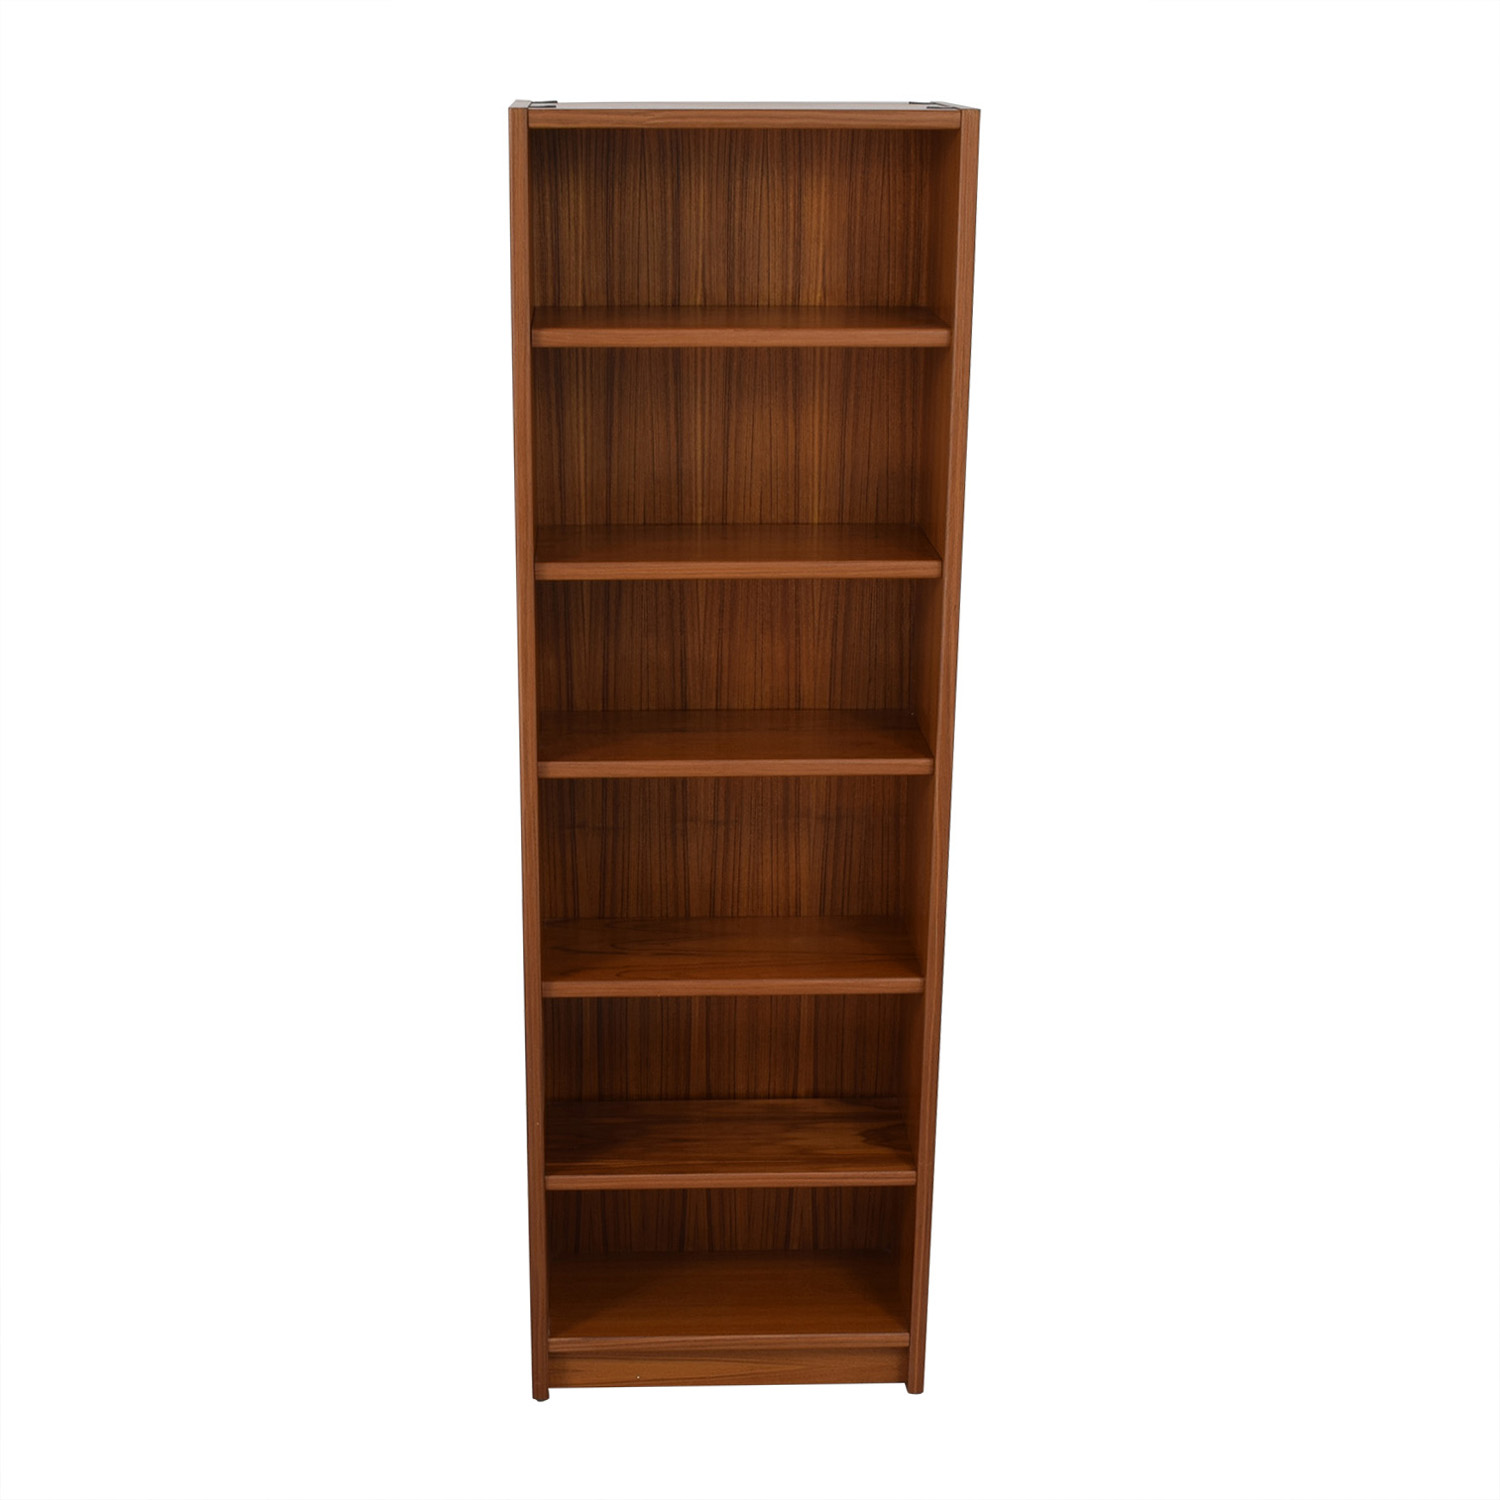 Tall Bookcase / Bookcases & Shelving